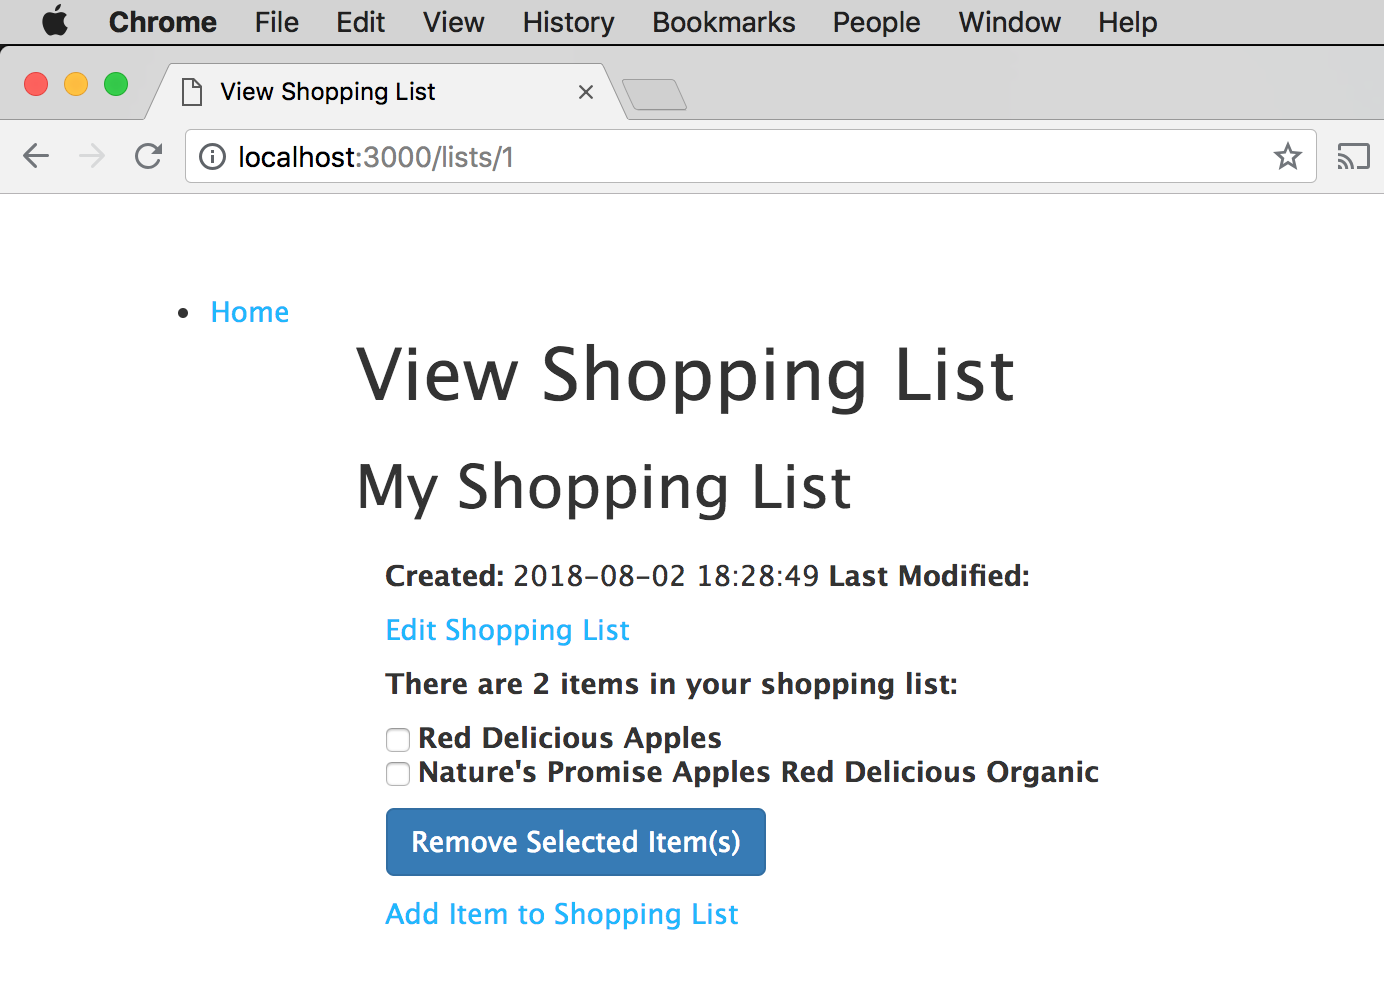 My Shopping List with items